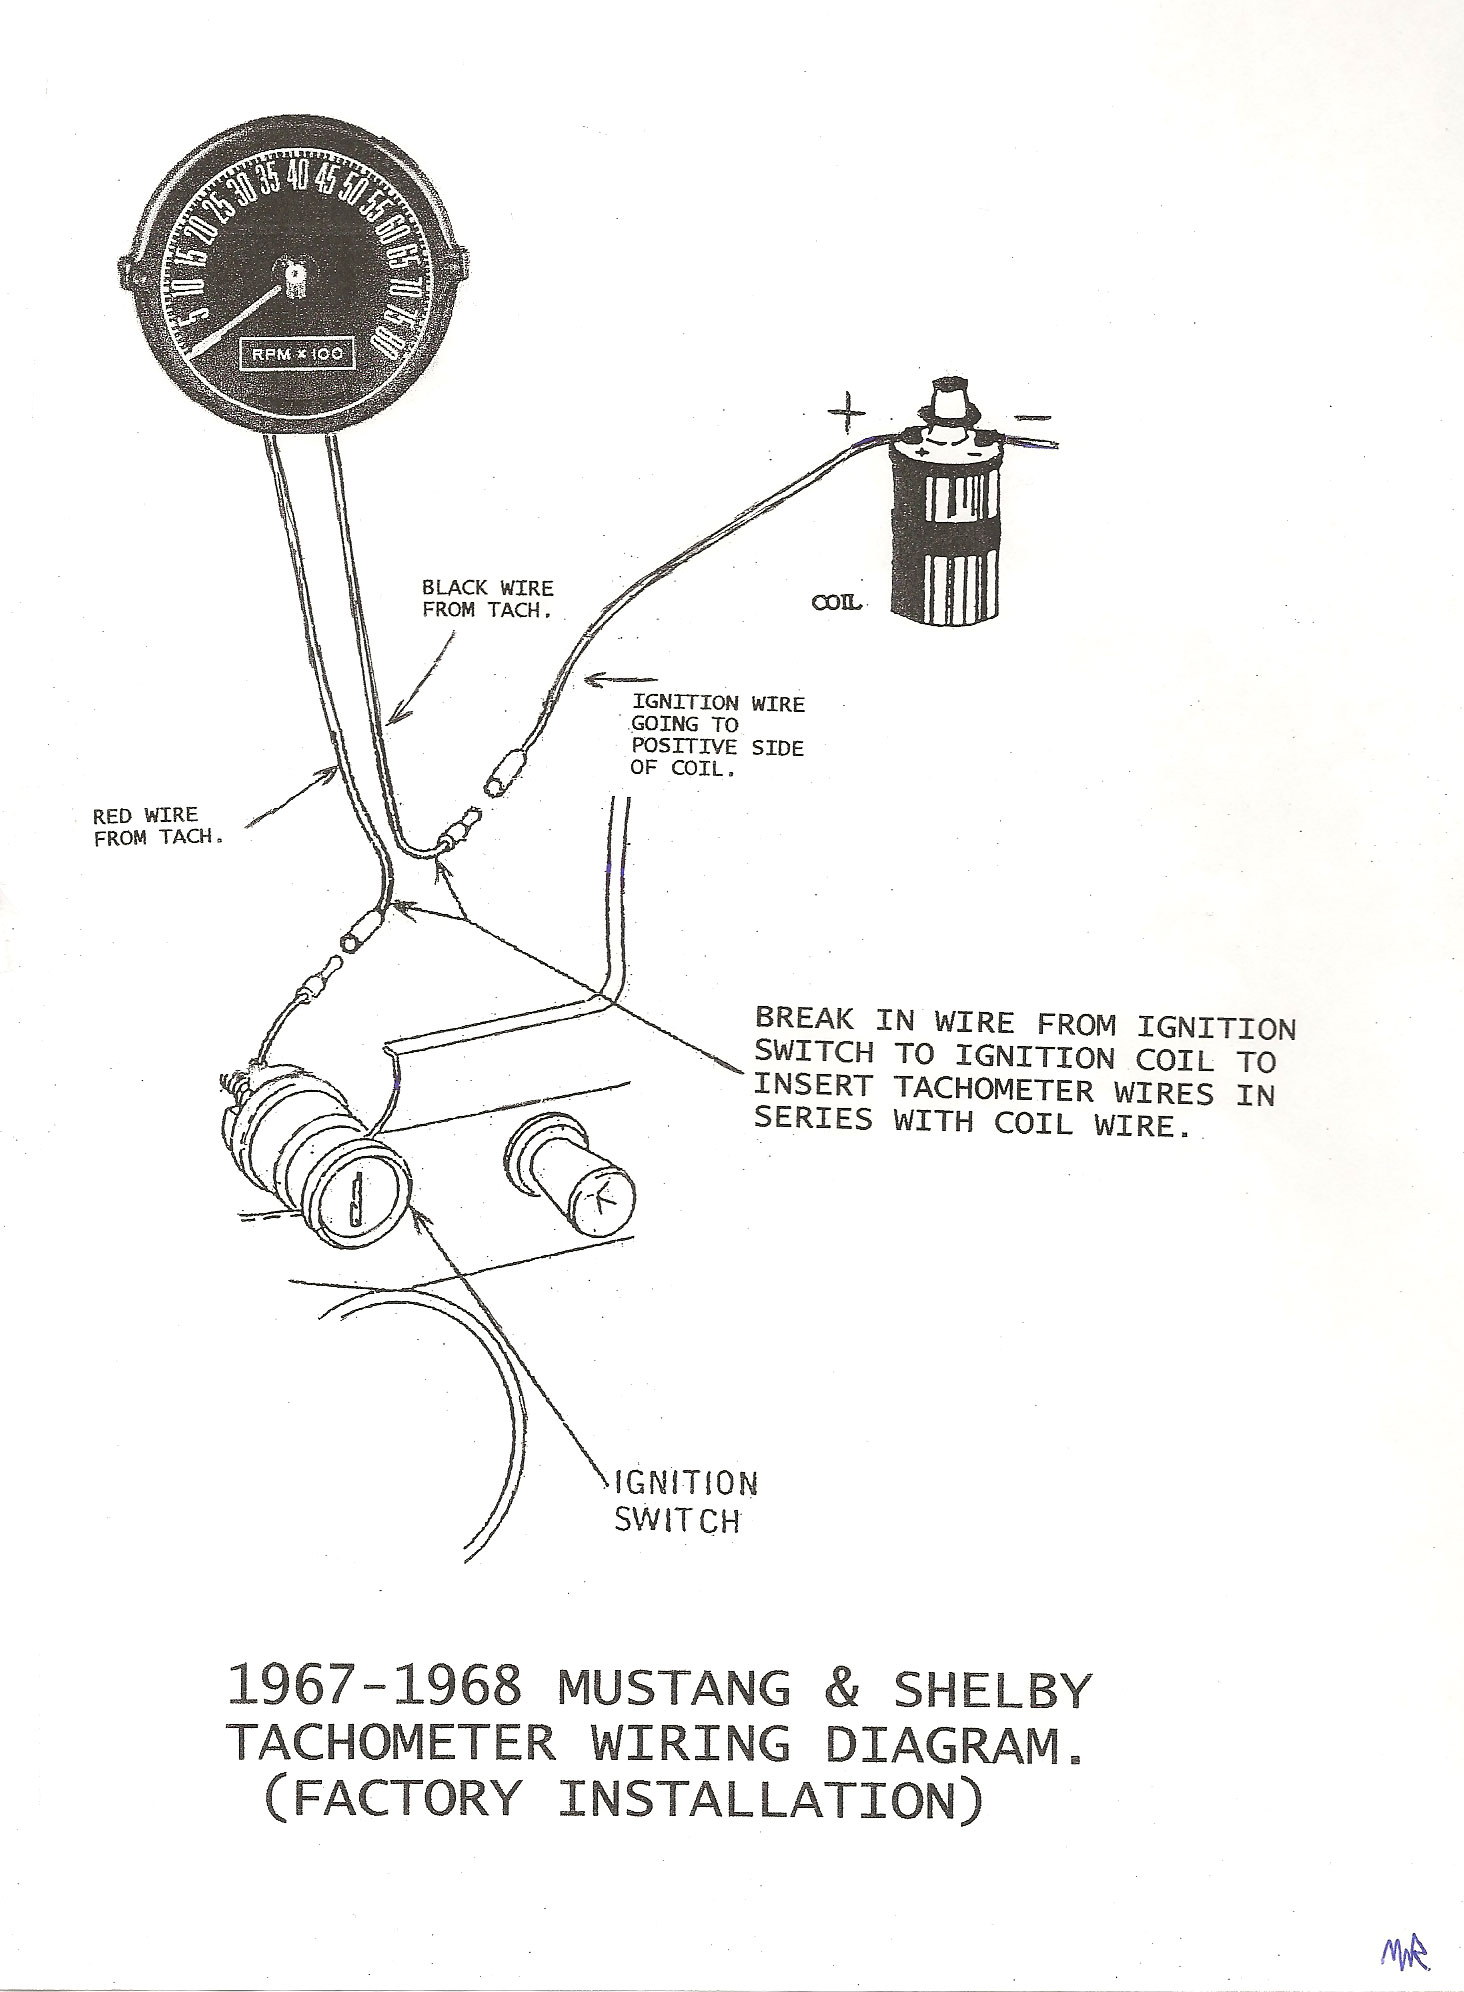 1965 Mustang Tachometer Wiring Harness Diagram 1973 Tech Info Rh Cobranda Com 1968 Ford Schematic